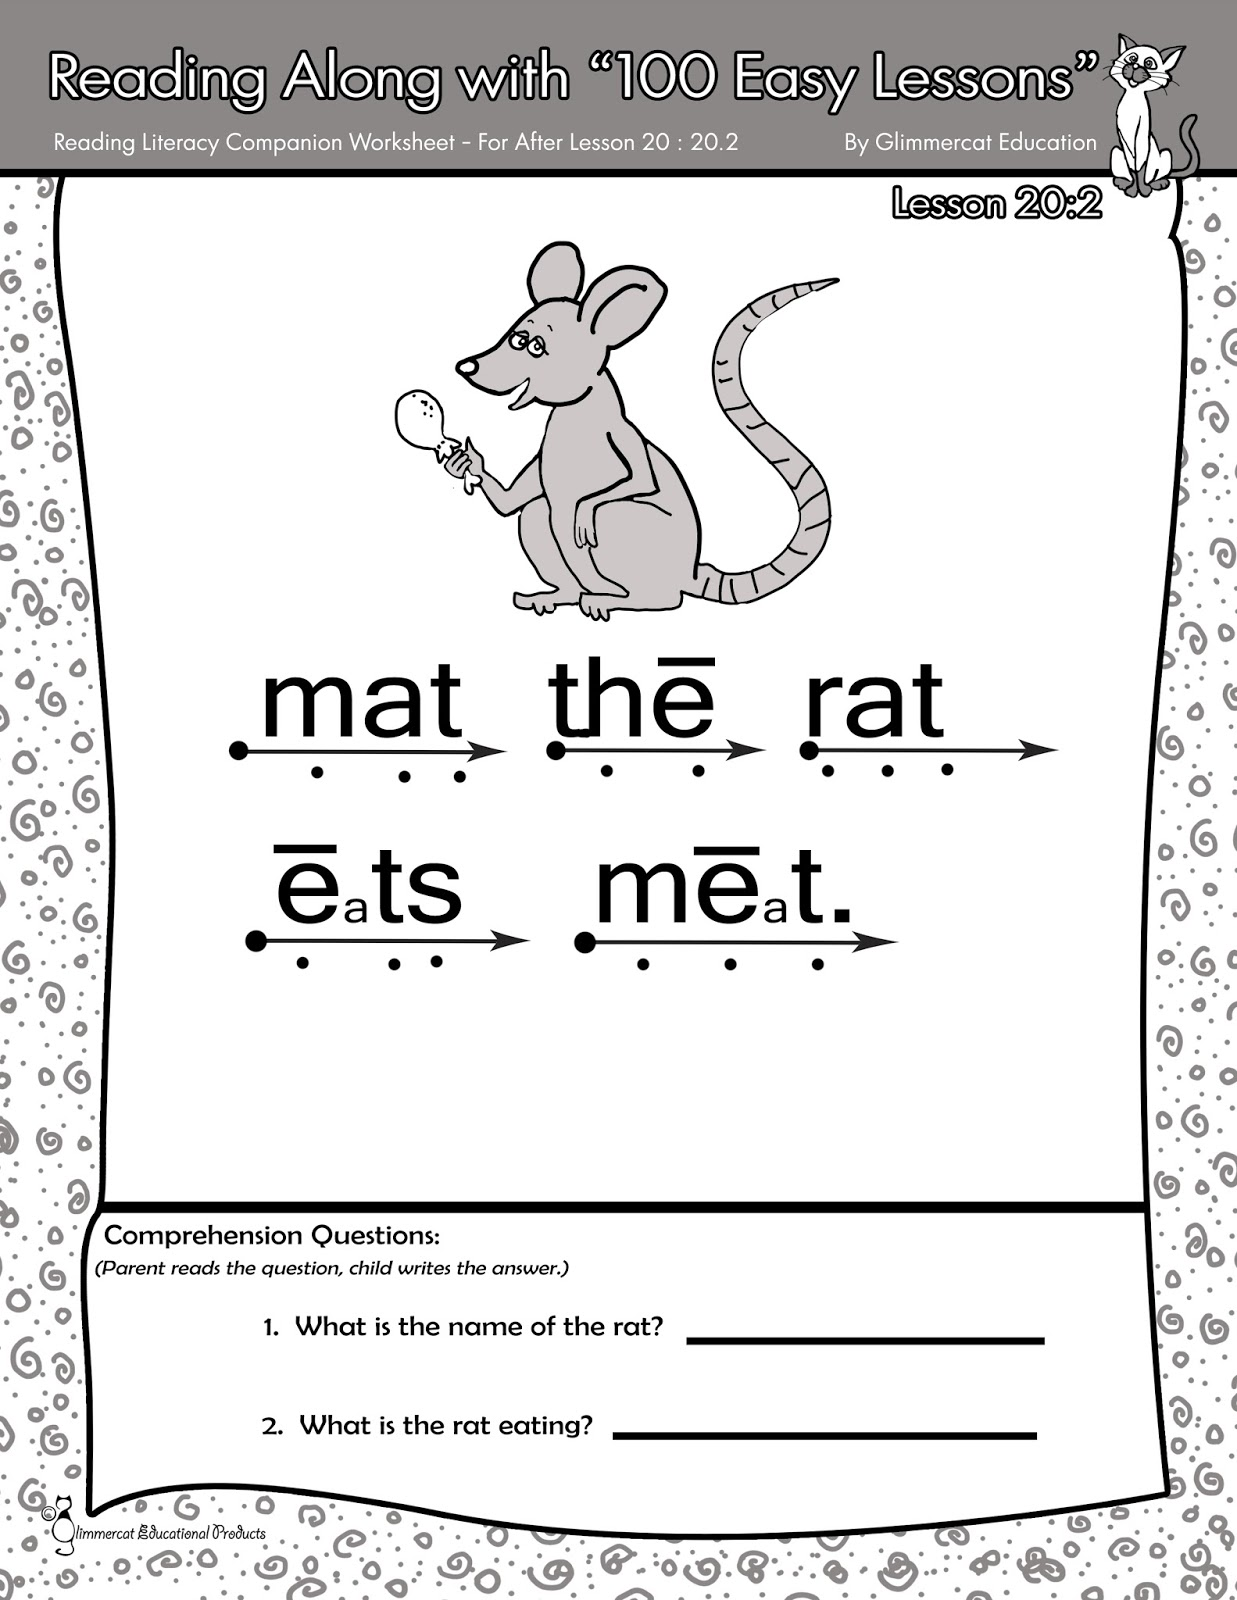 teach your child to read in 100 easy lessons suppliment worksheet ...